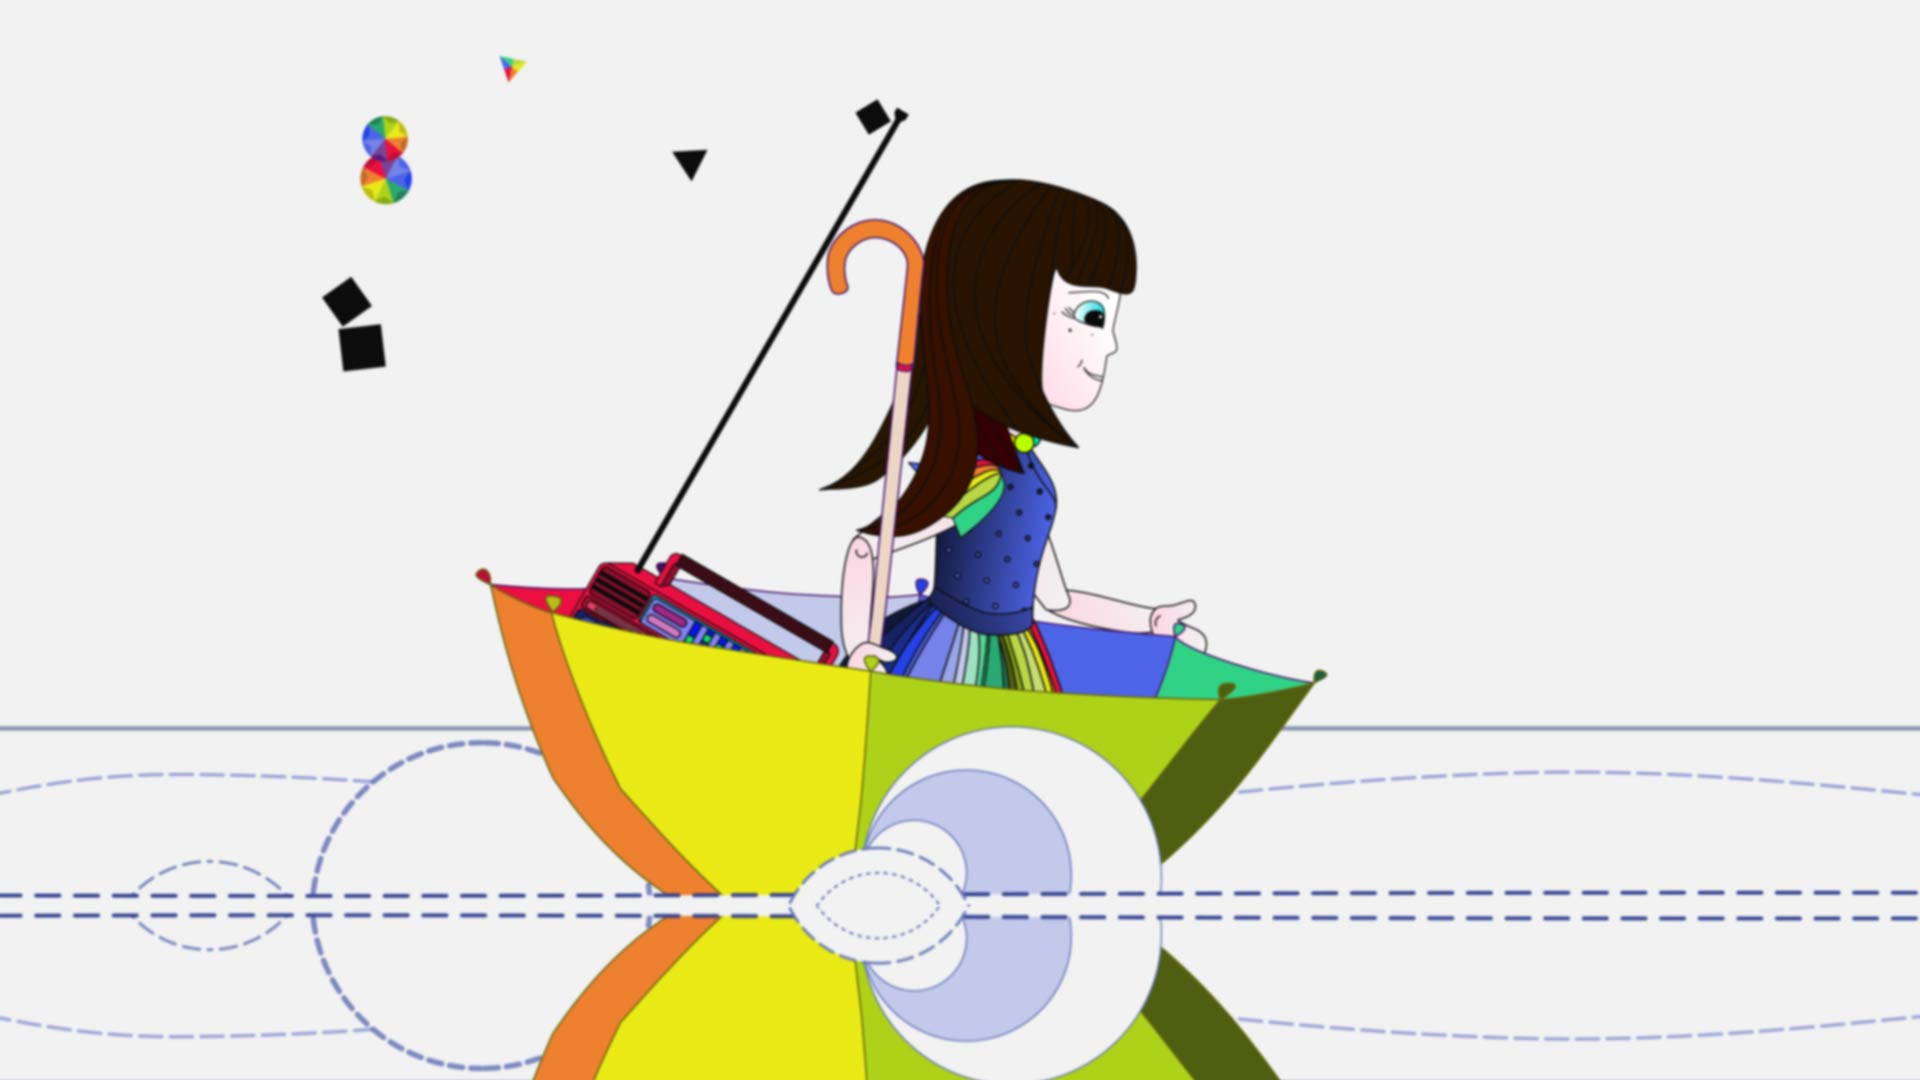 Still frame of animated music video